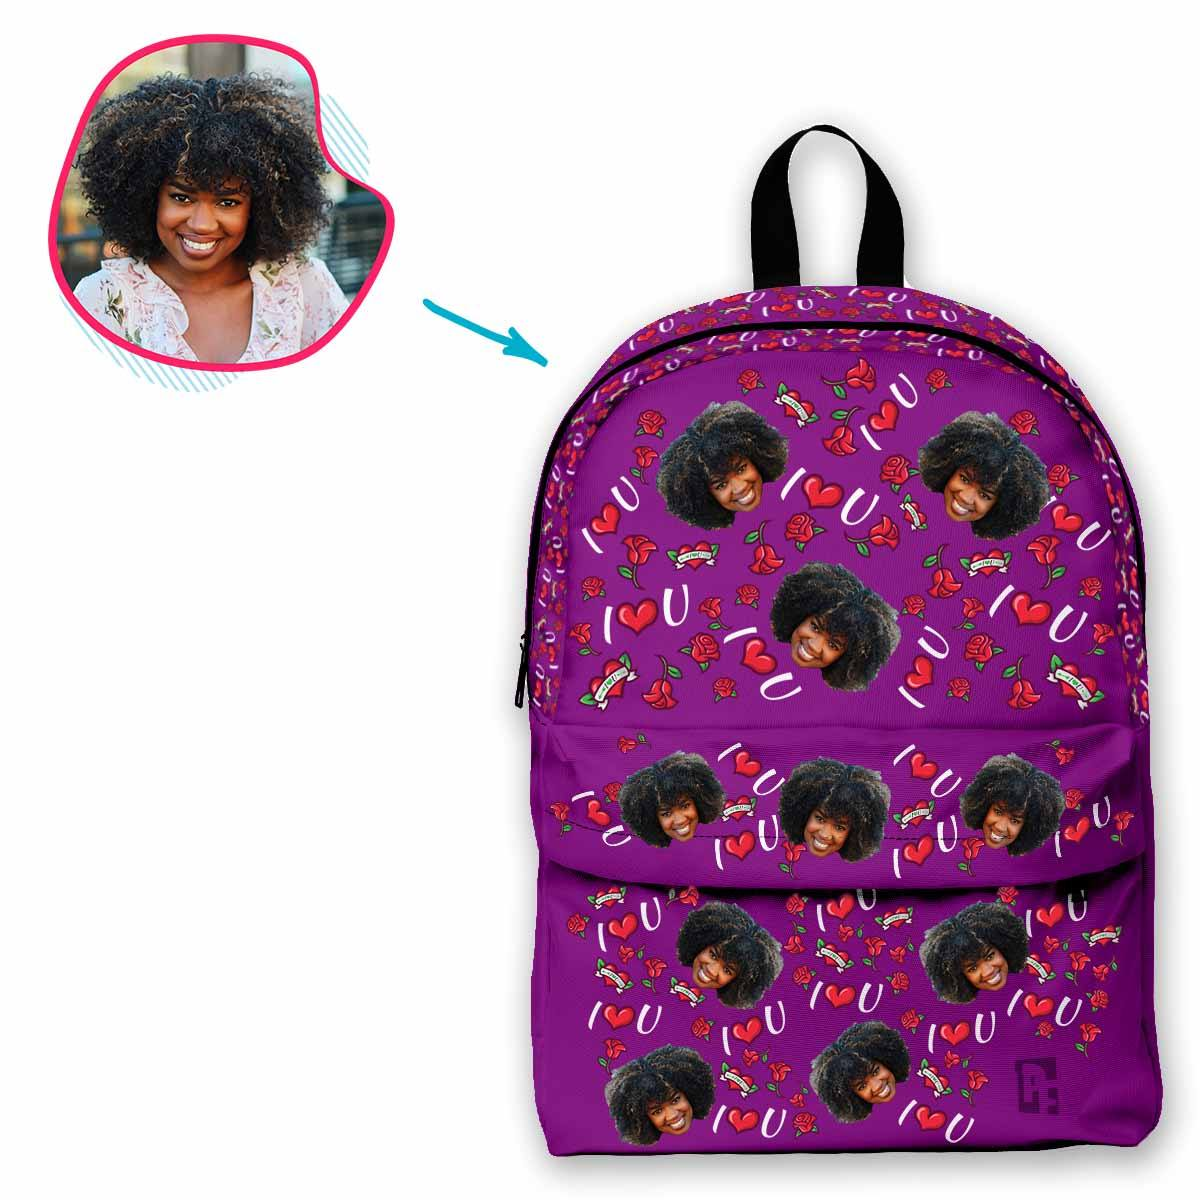 purple Valentines classic backpack personalized with photo of face printed on it